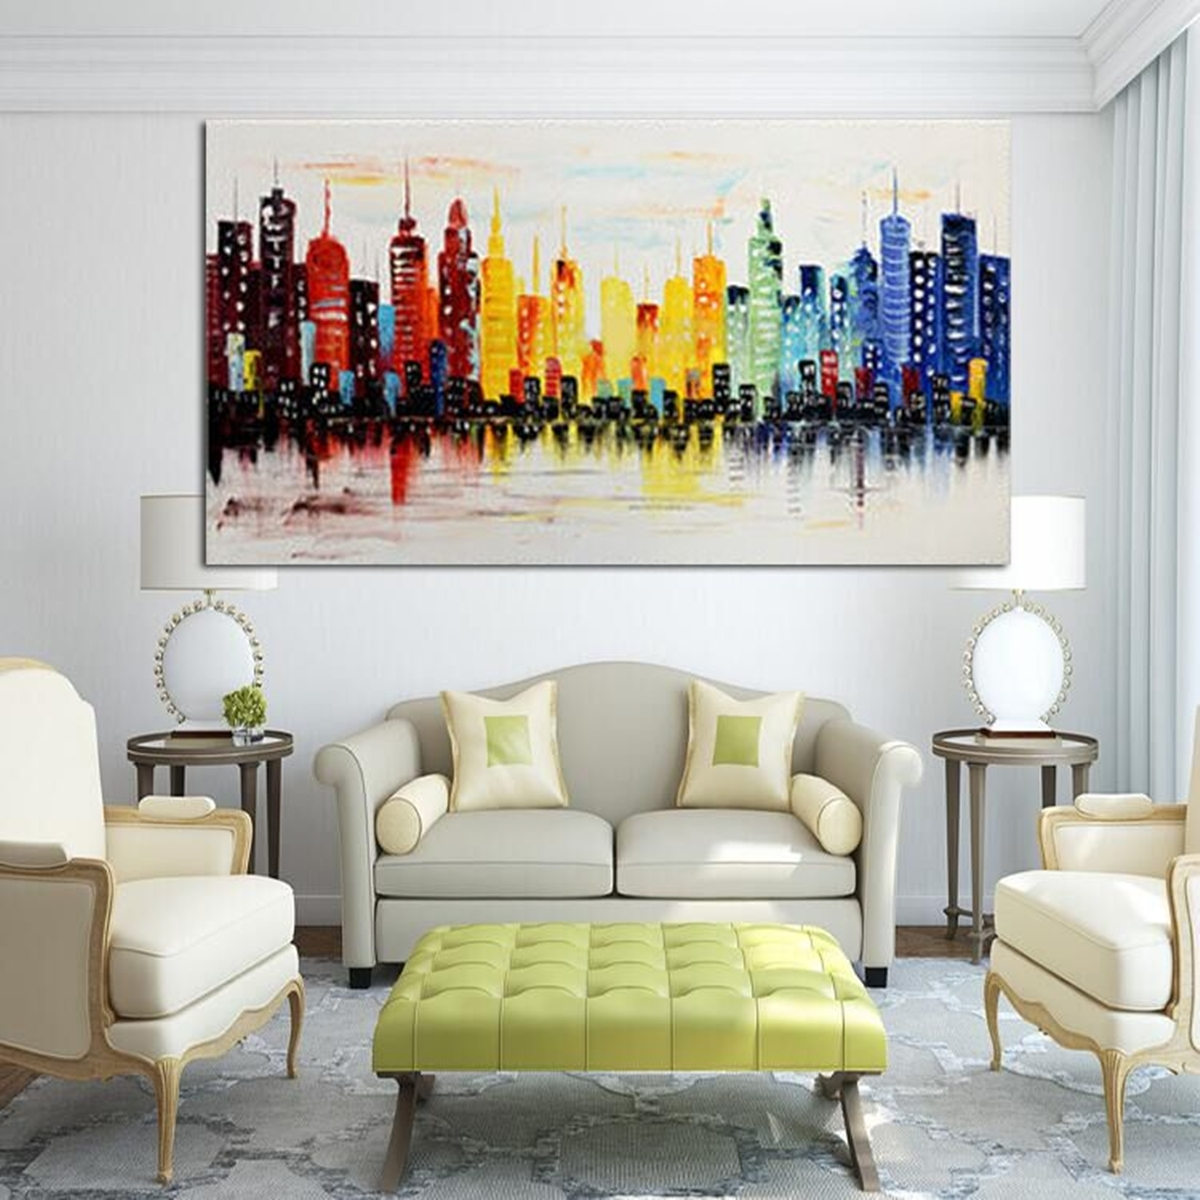 120x60cm Modern City Canvas Abstract Painting Print Living Room In 2017 Abstract Living Room Wall Art (View 8 of 20)